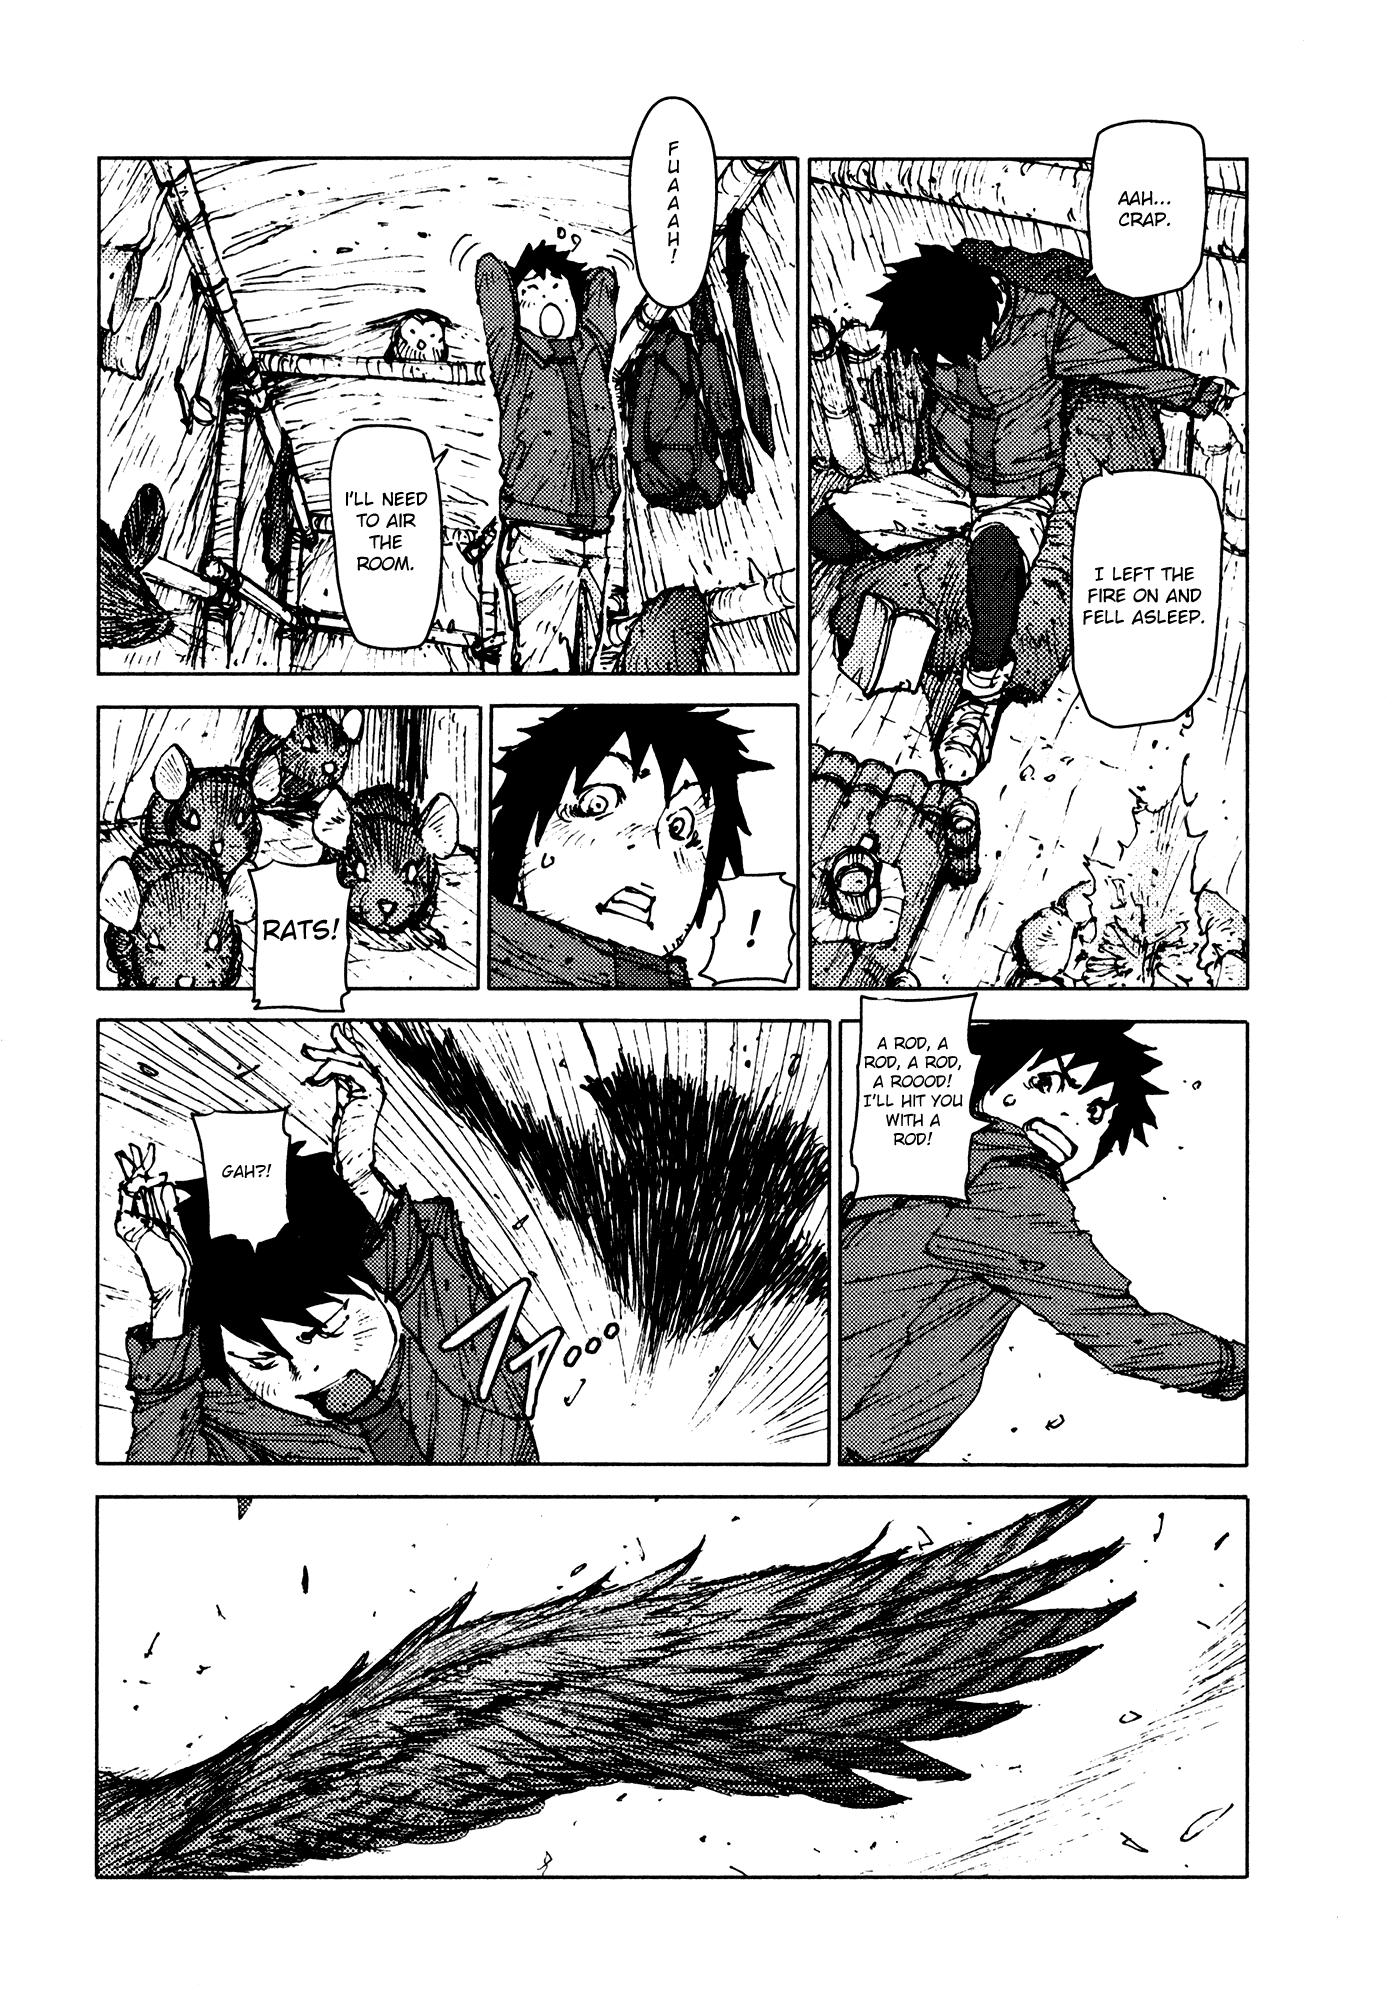 Survival: Shounen S no Kiroku - Chapter 24